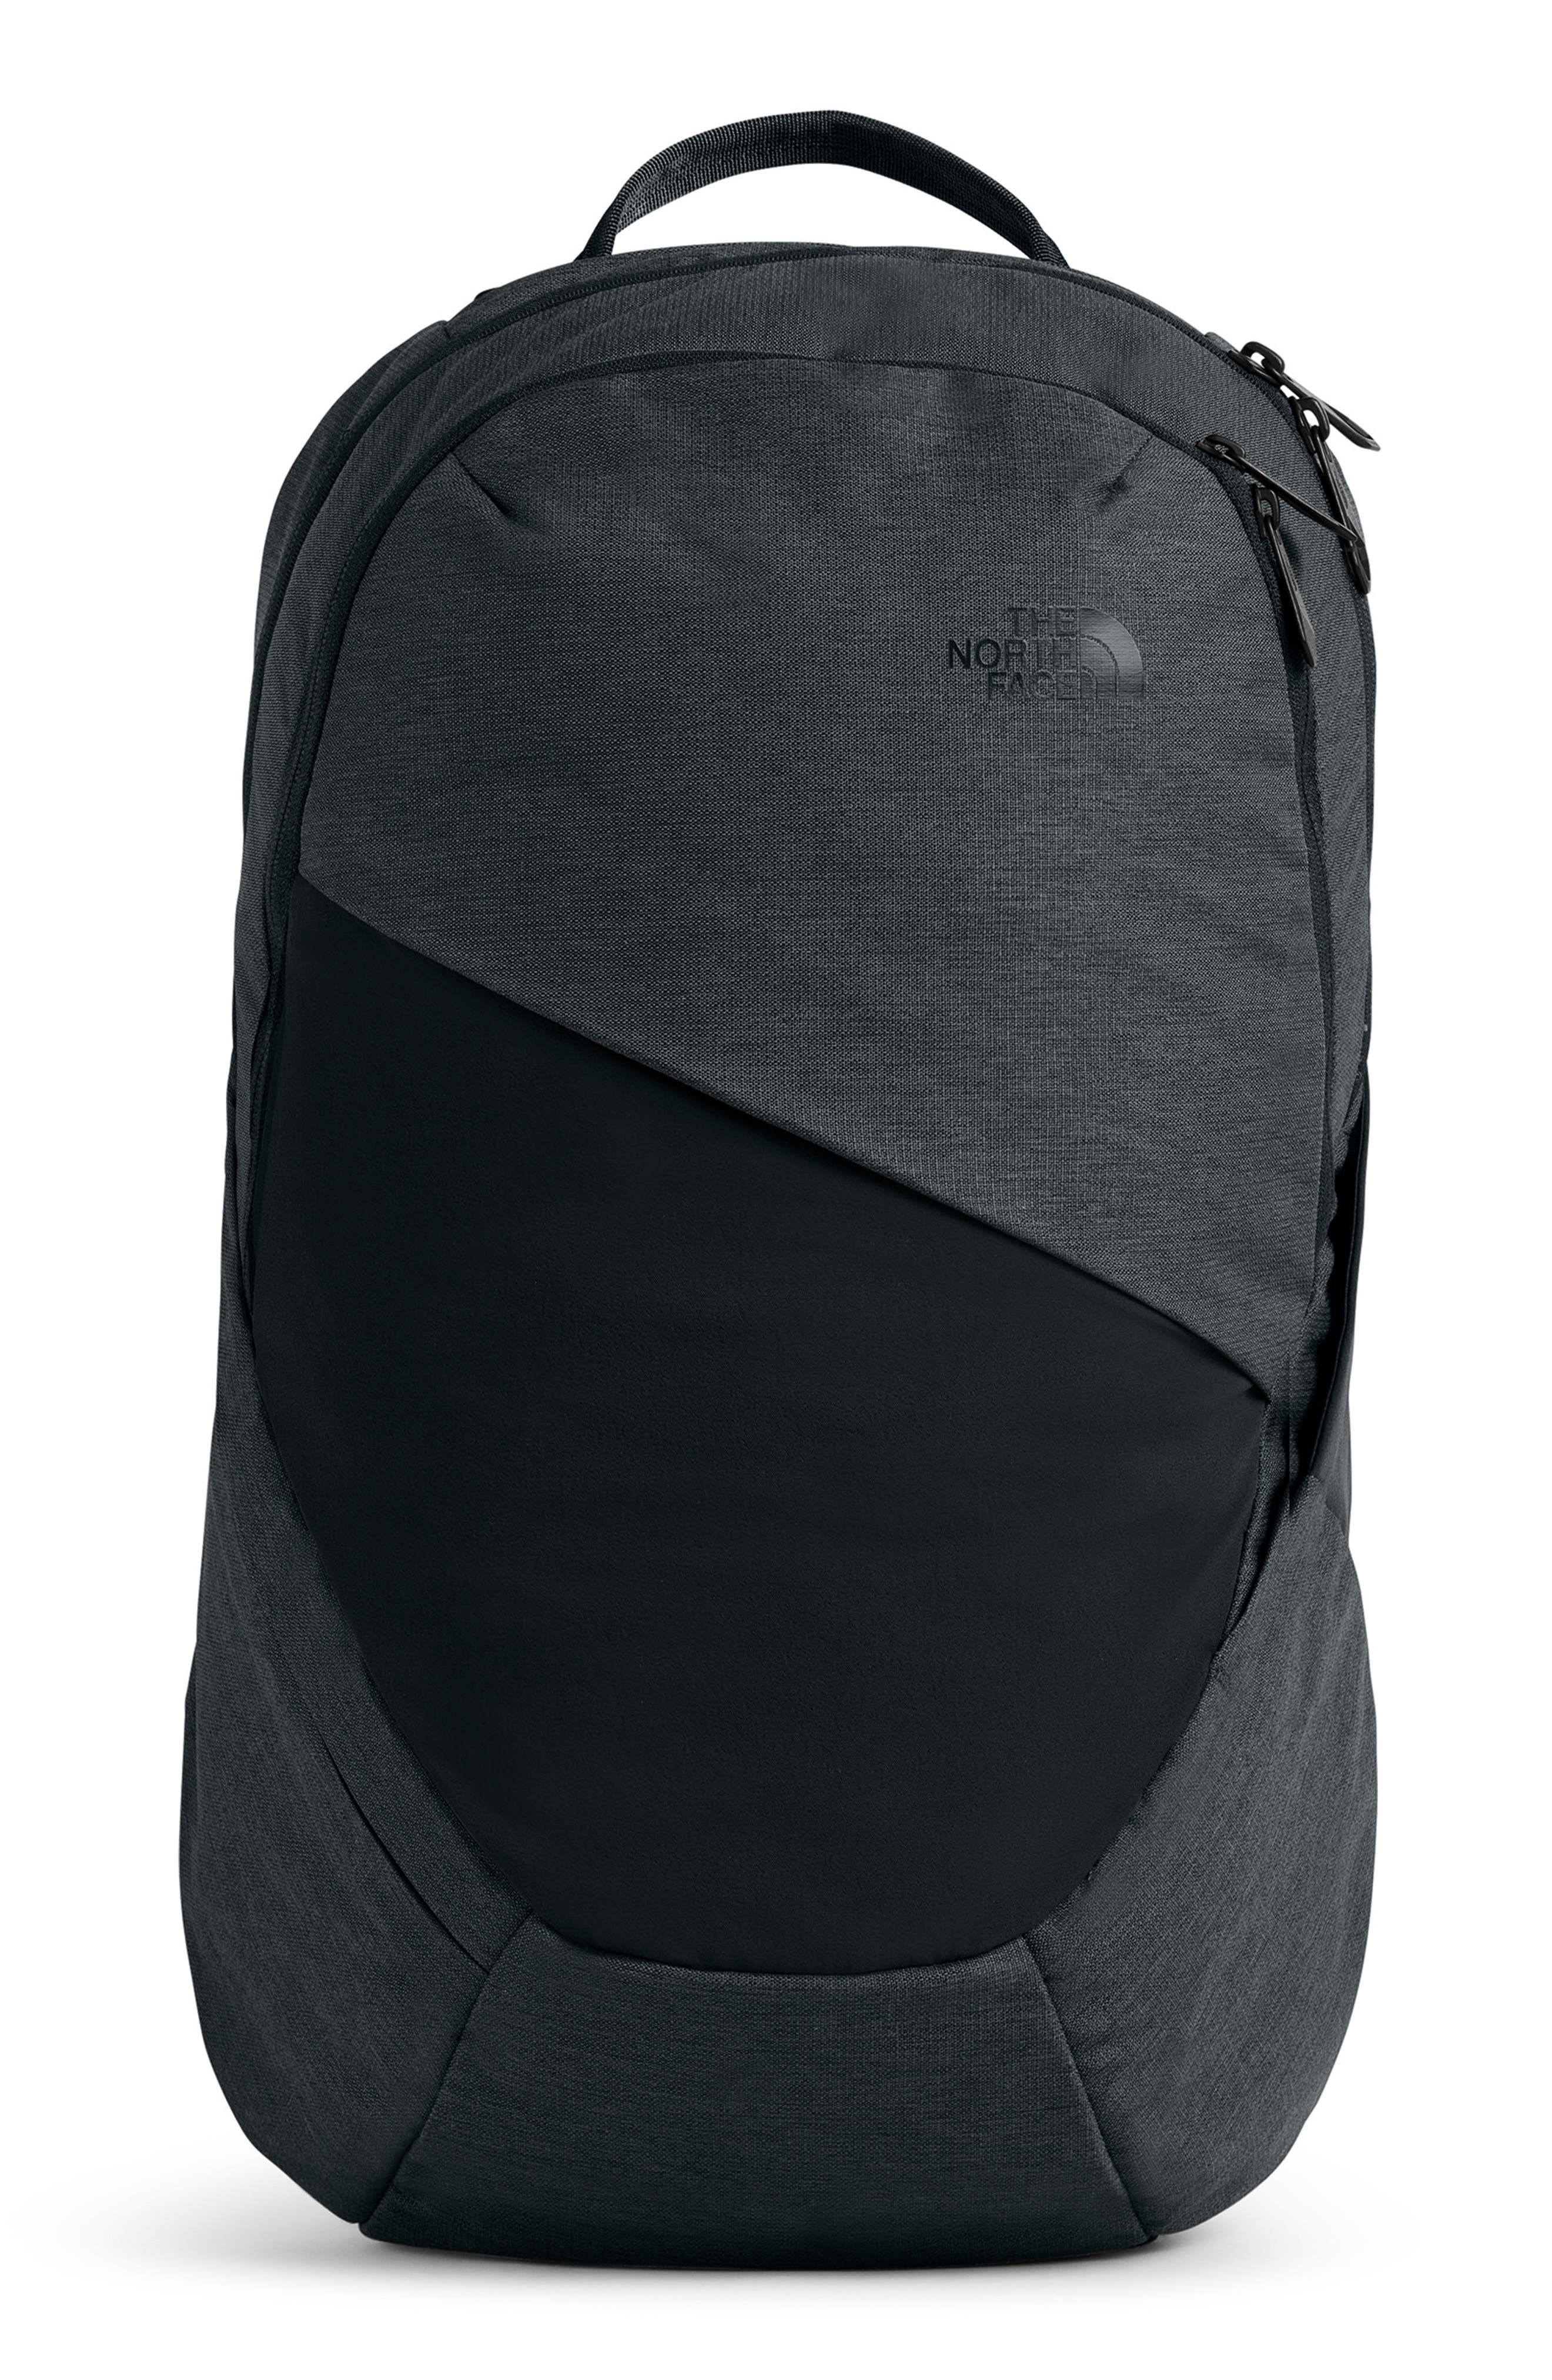 365fcbd6ba The North Face Women's Bags